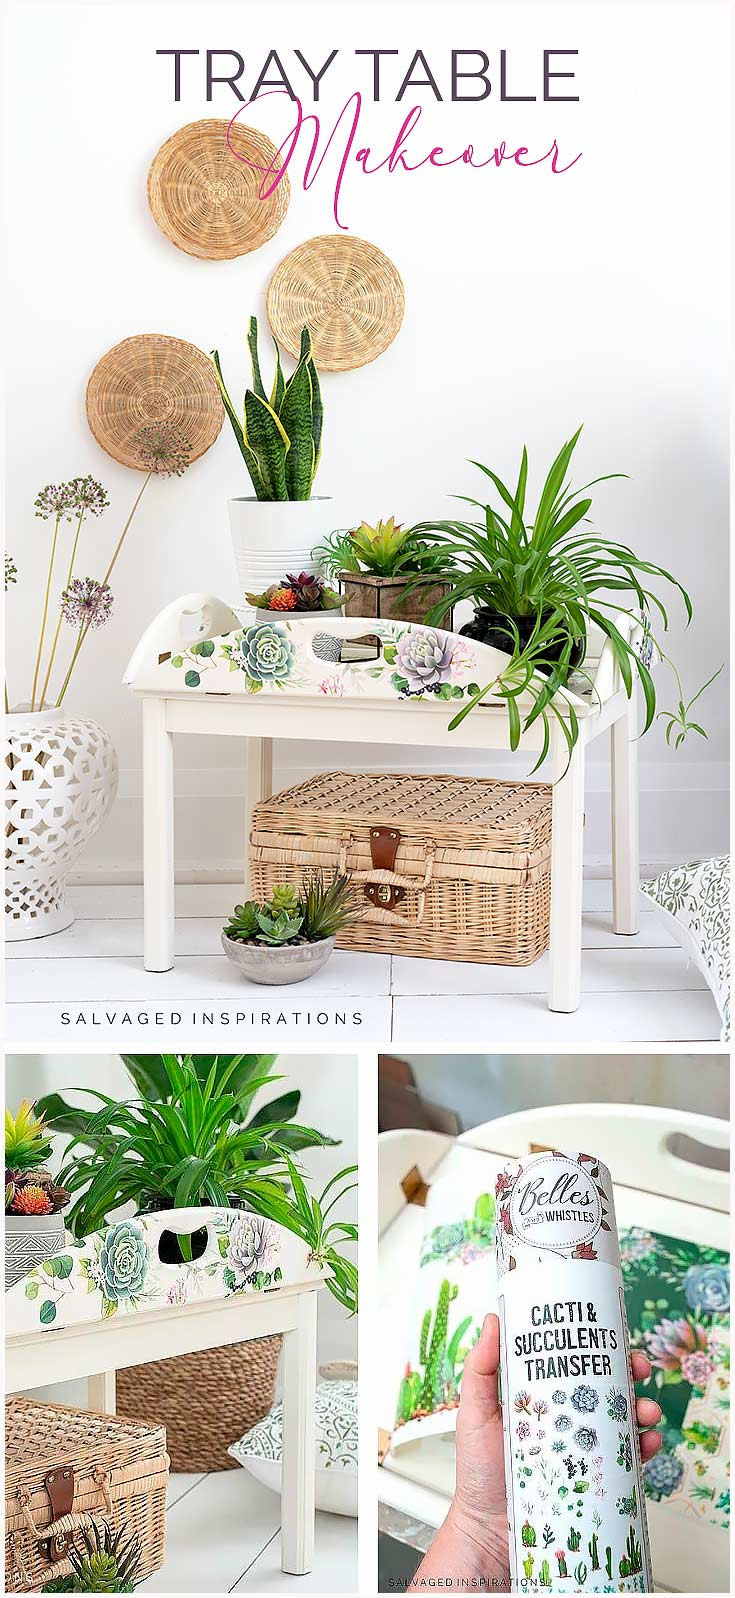 Tray Table Makeover PIN